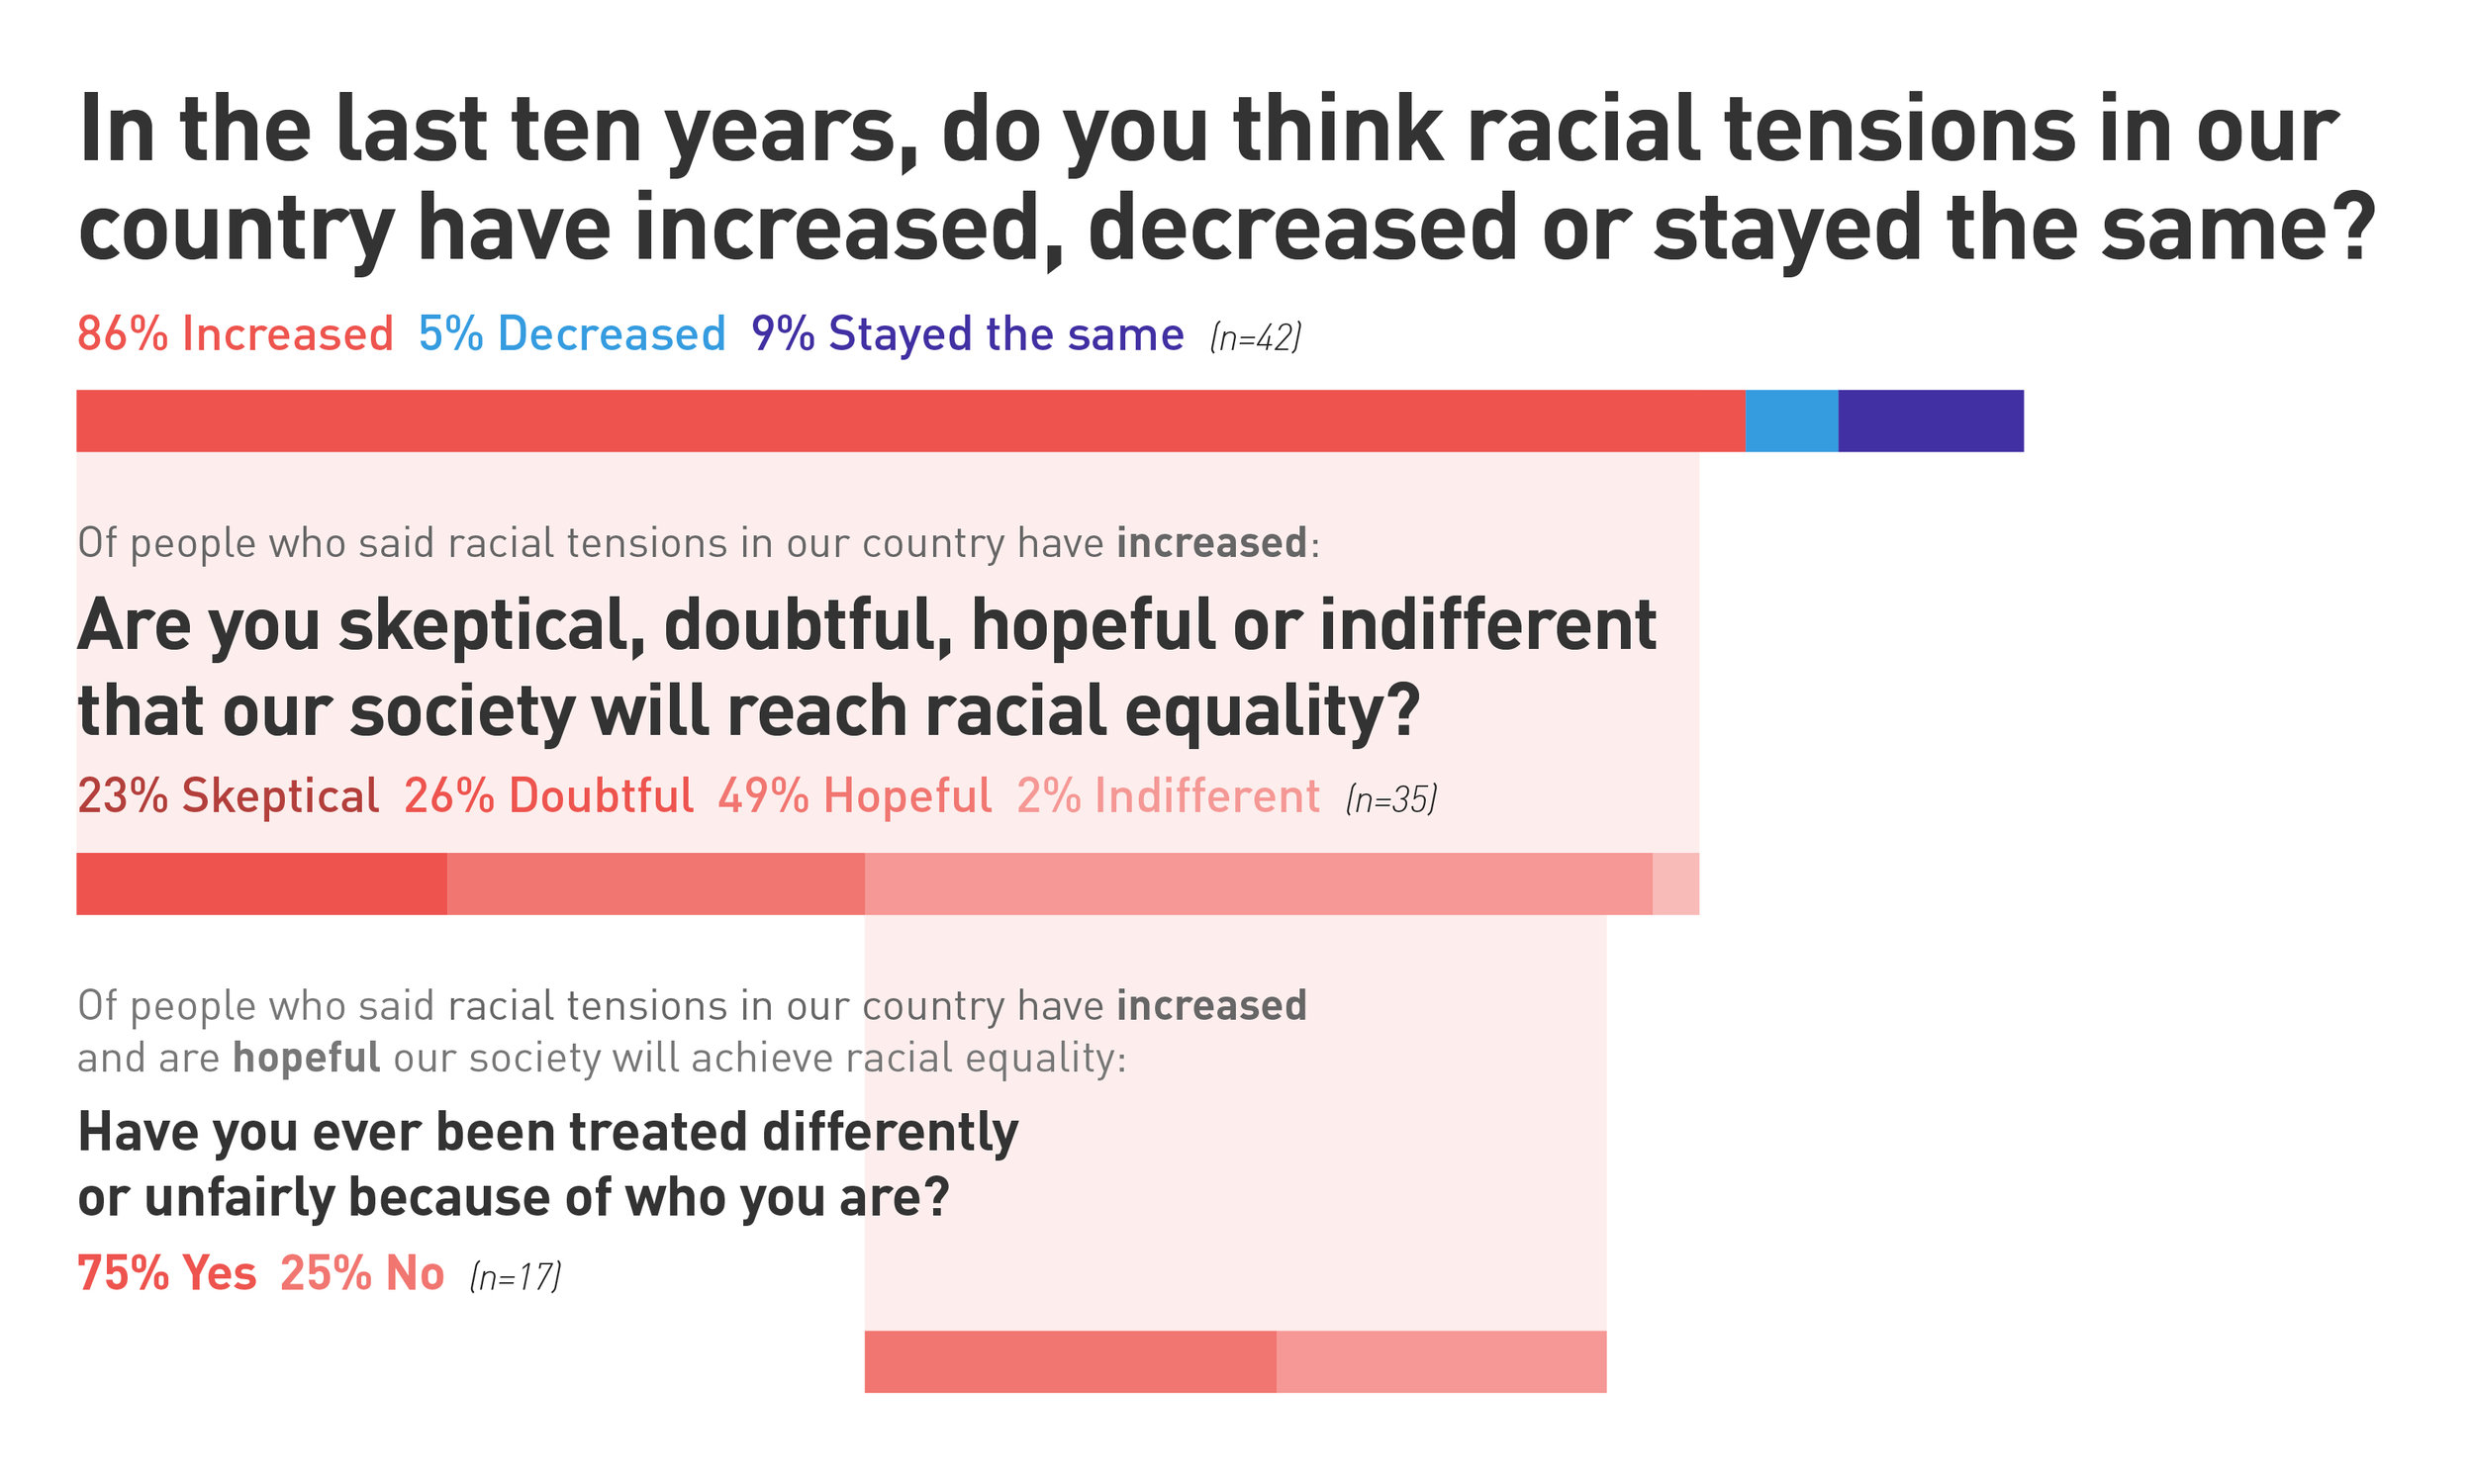 Although a majority of respondents think racial tensions have increased in the last 10 years, they are hopeful our society will reach racial equality.